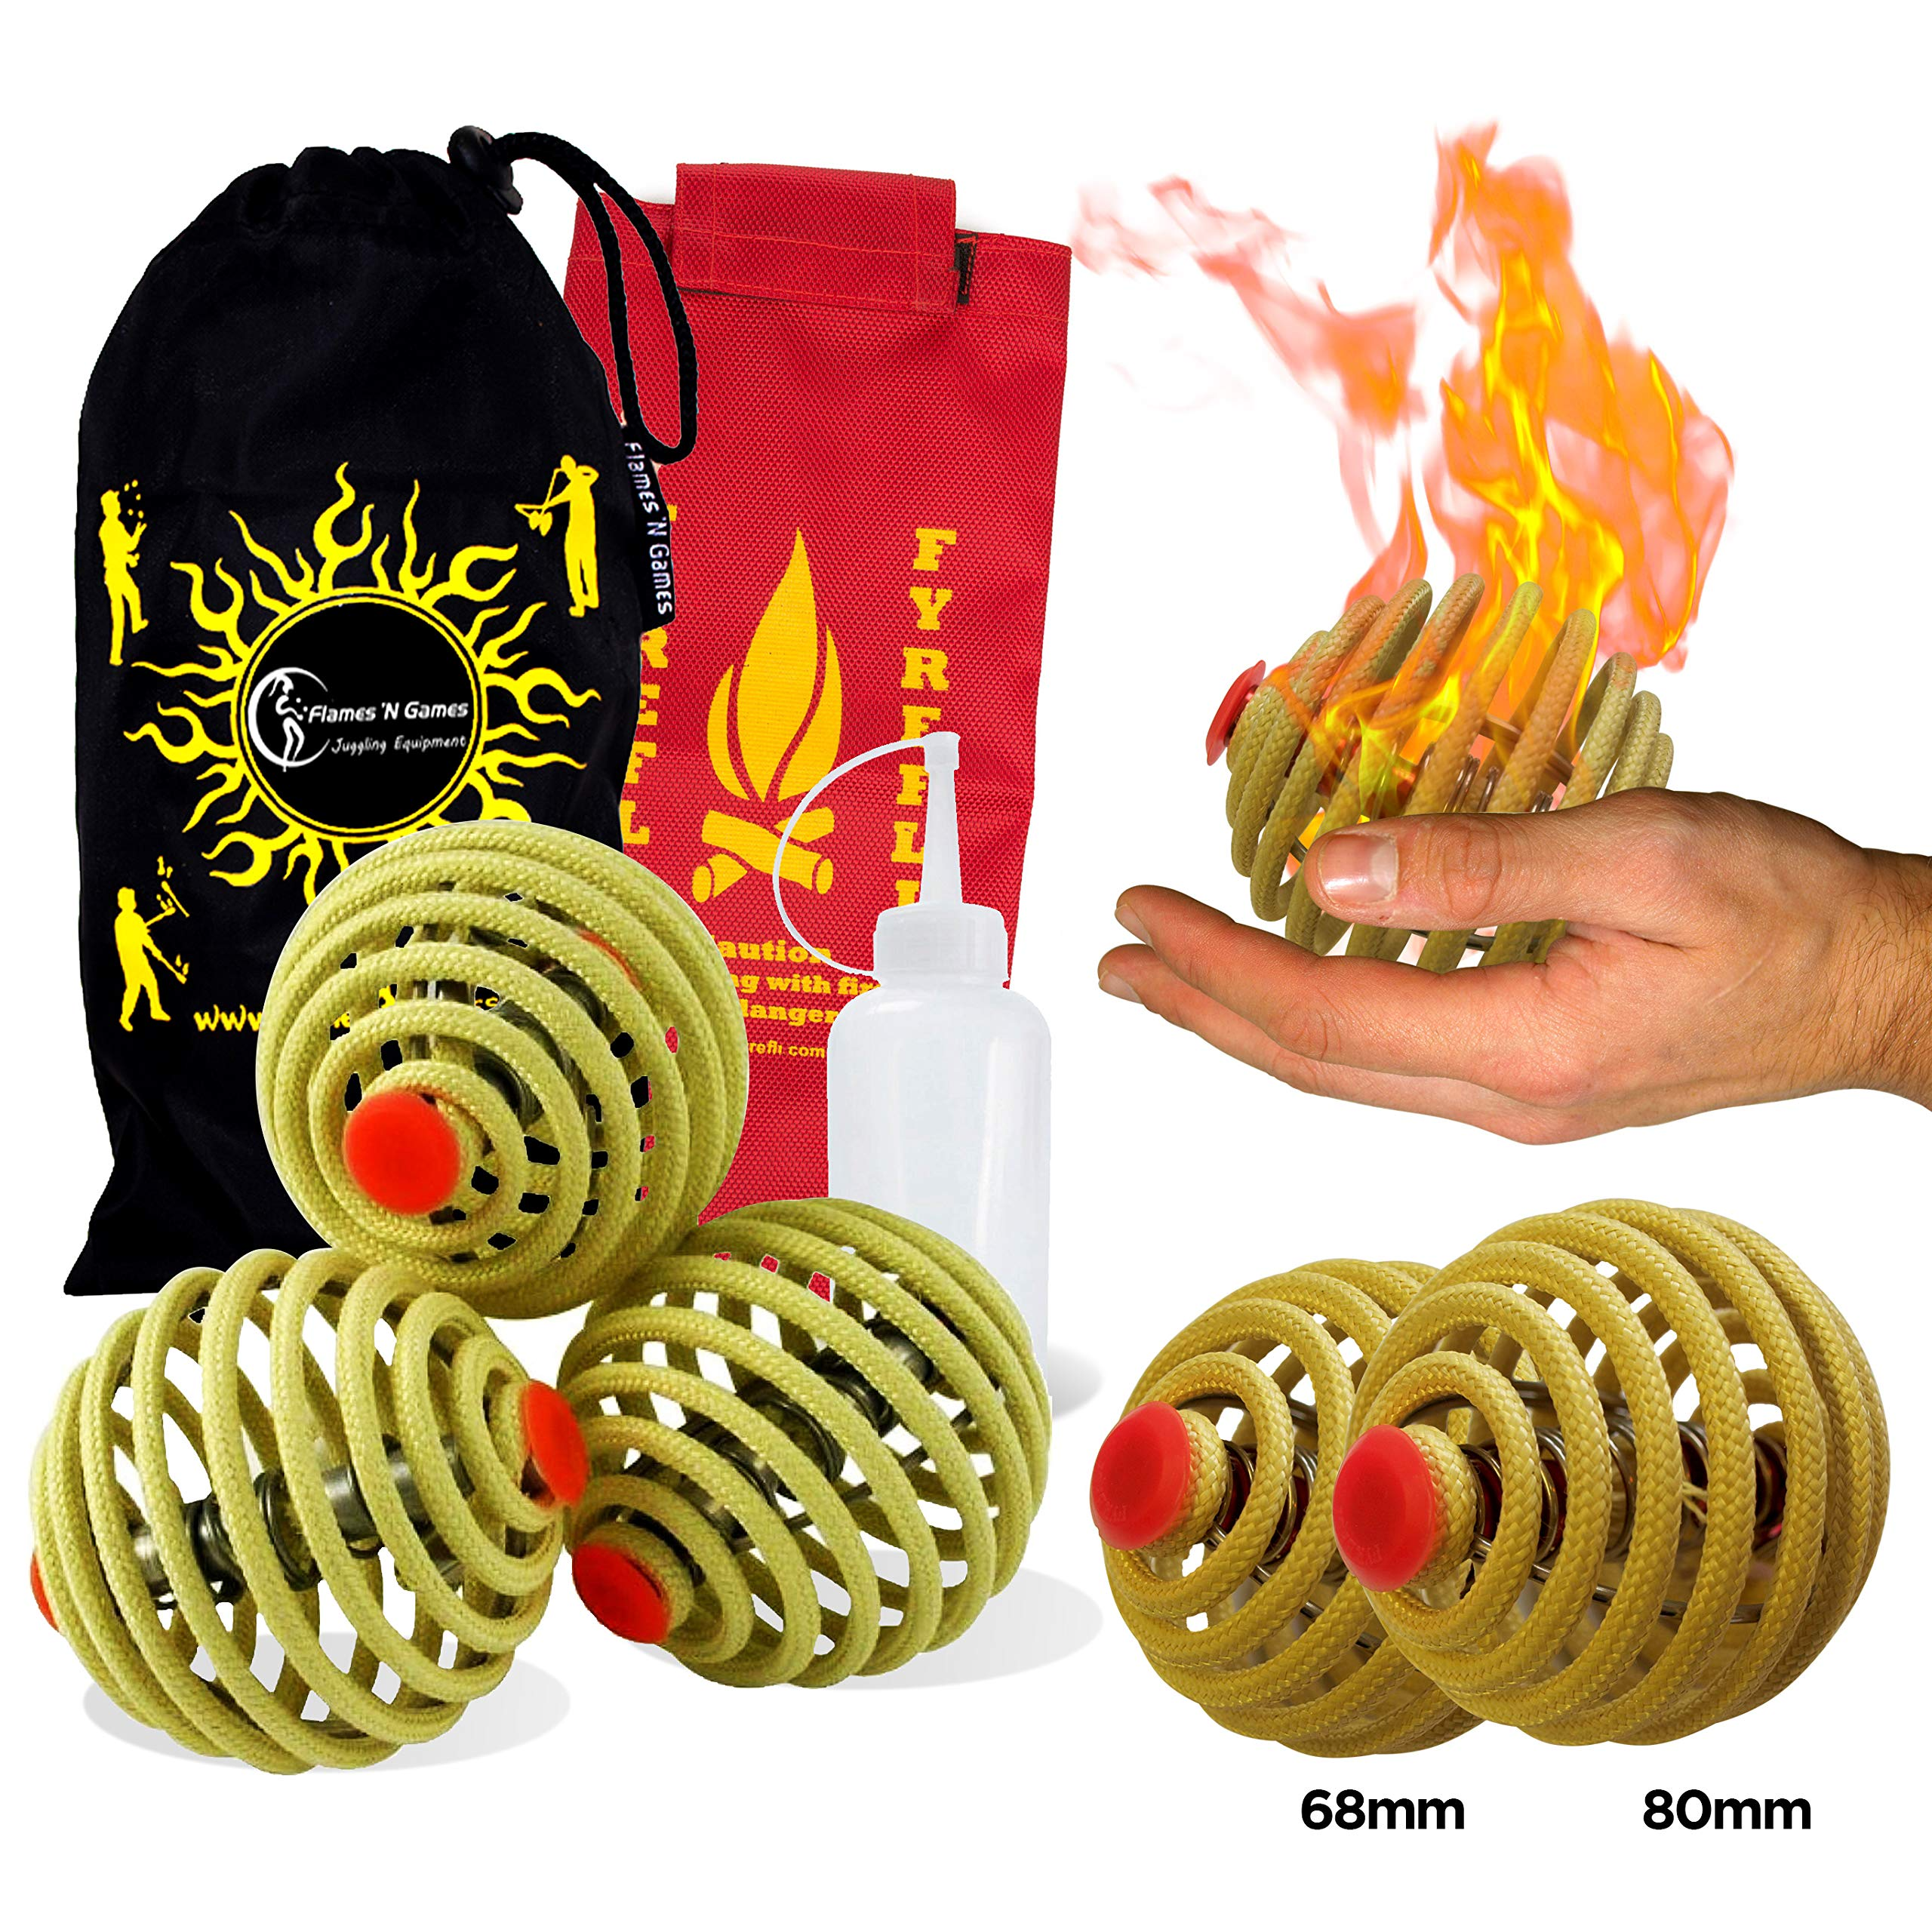 Fyrefli fire juggling balls (80mm) Pro Fire Juggling Ball Set of 3 and fuel bottle + Travel Bag. by Flames N Games Juggling Ball Sets (Image #1)